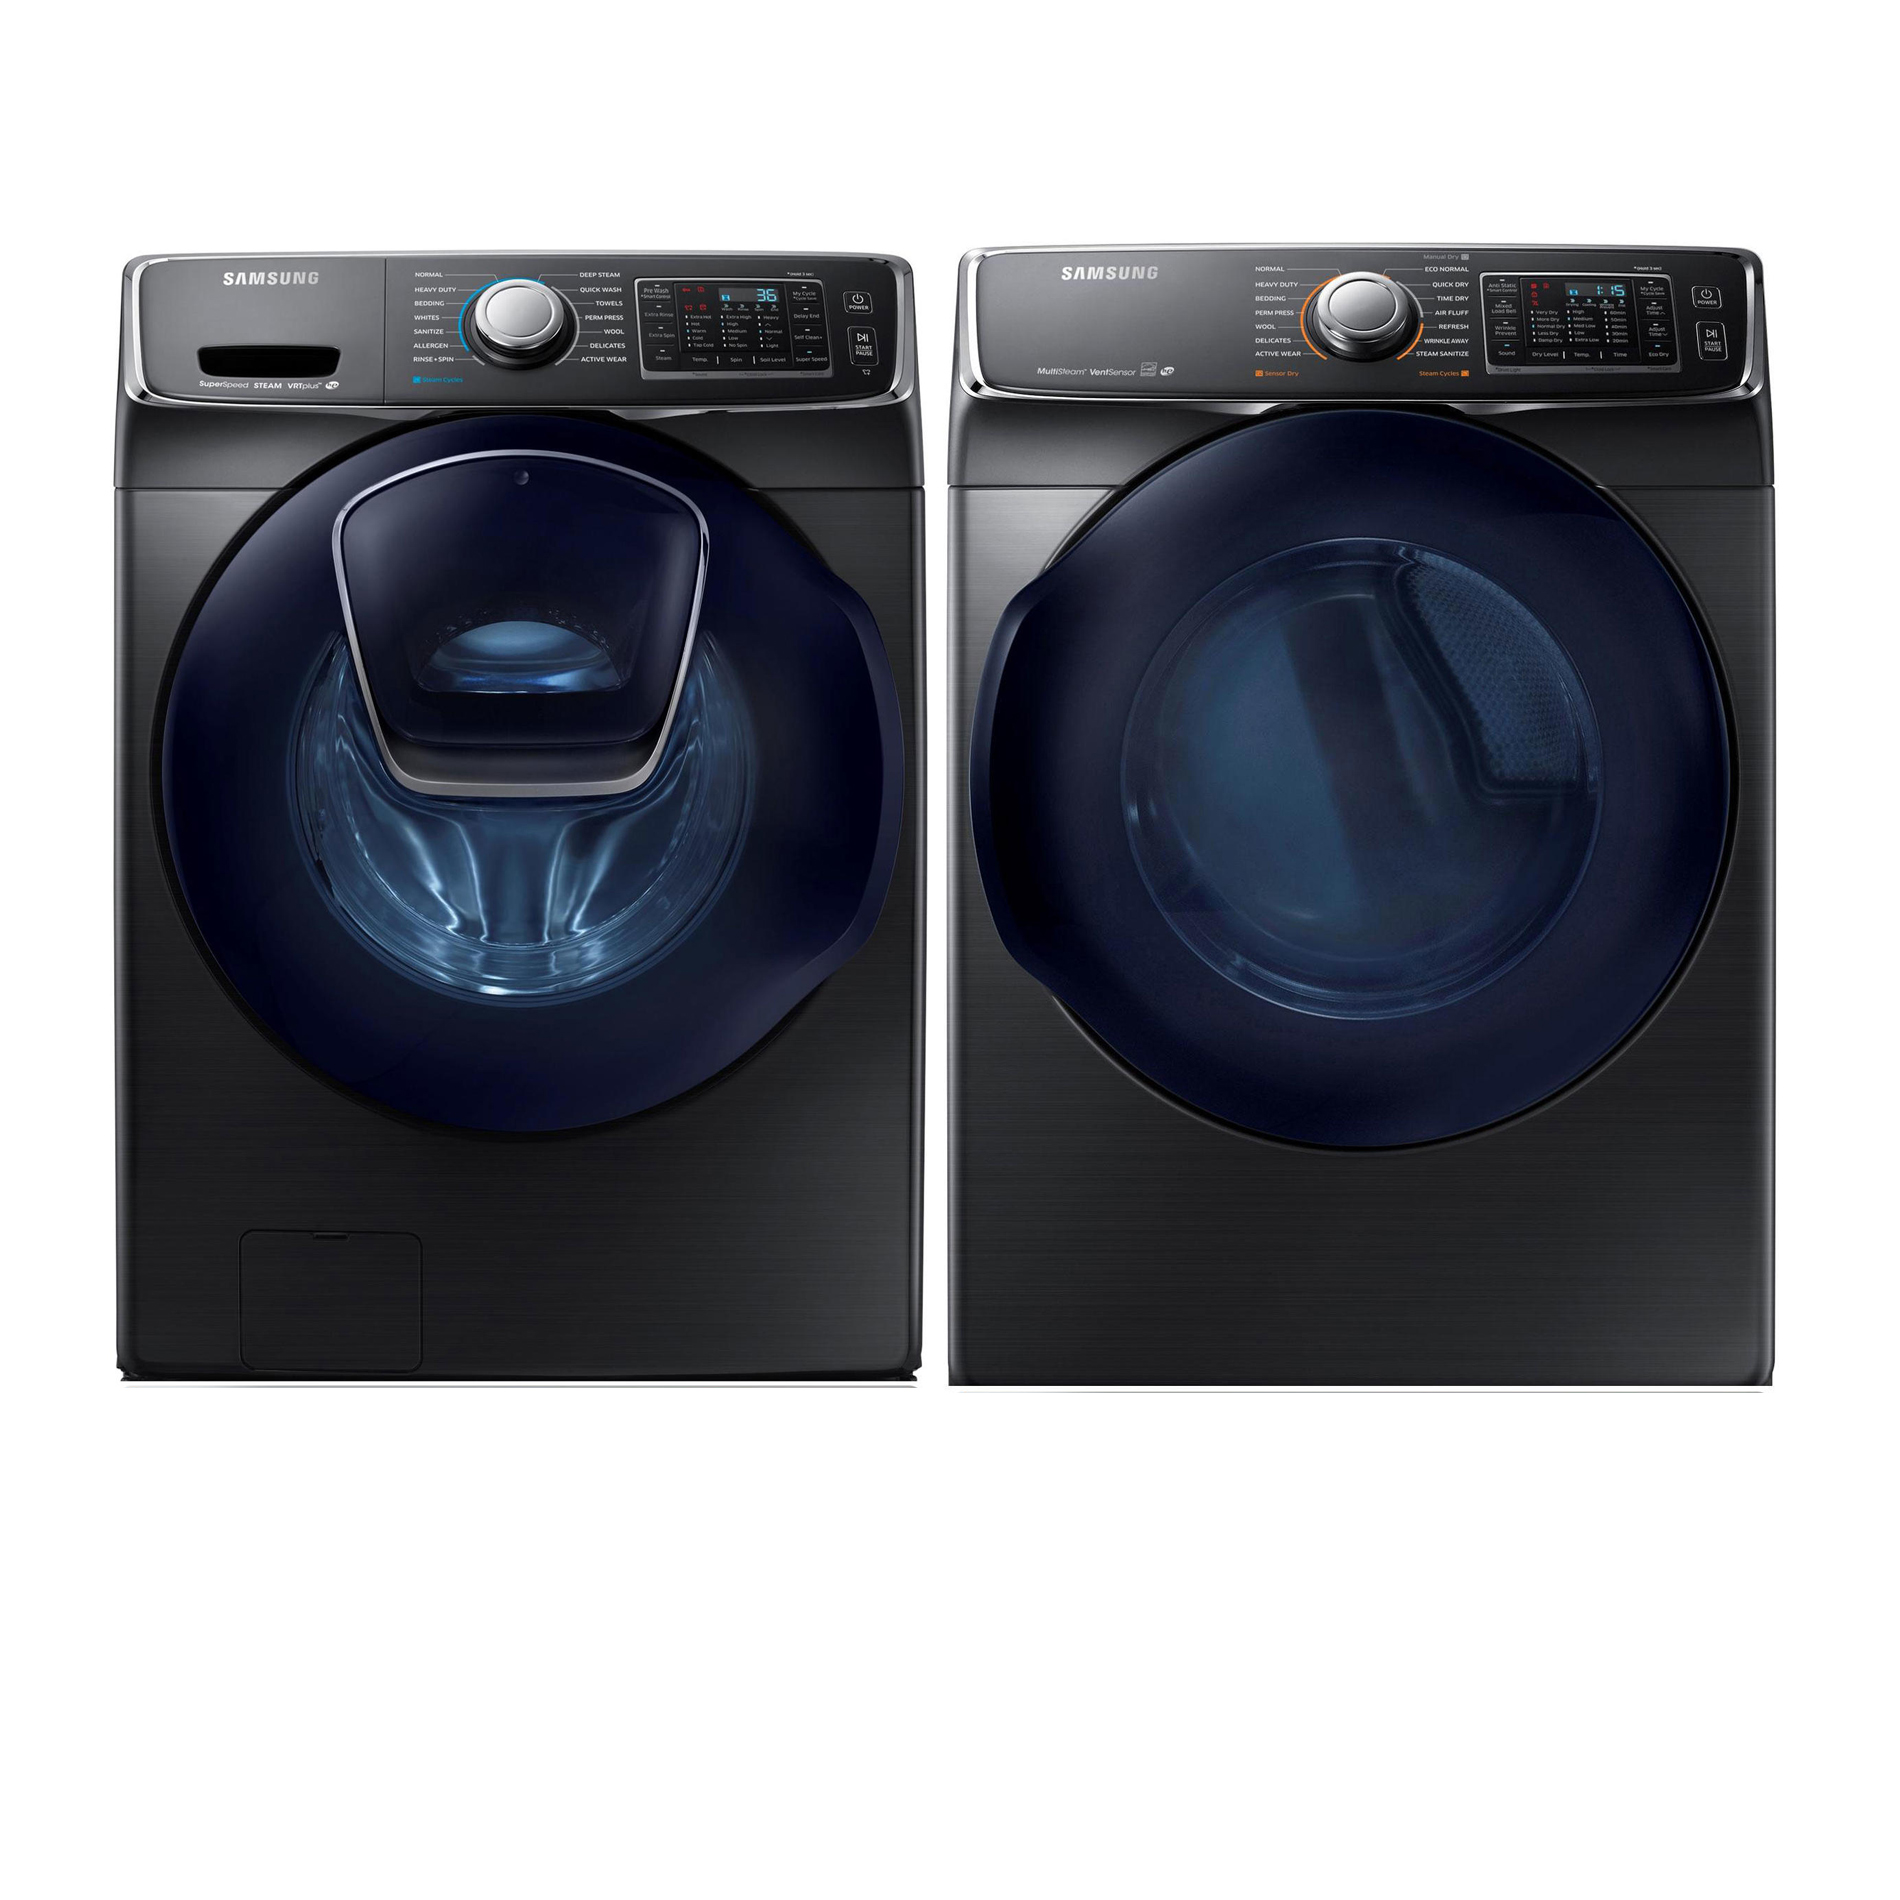 4.5 cu. ft. AddWash Front Load Washer and 7.5 cu. Ft Dryer Bundle - Black Stainless